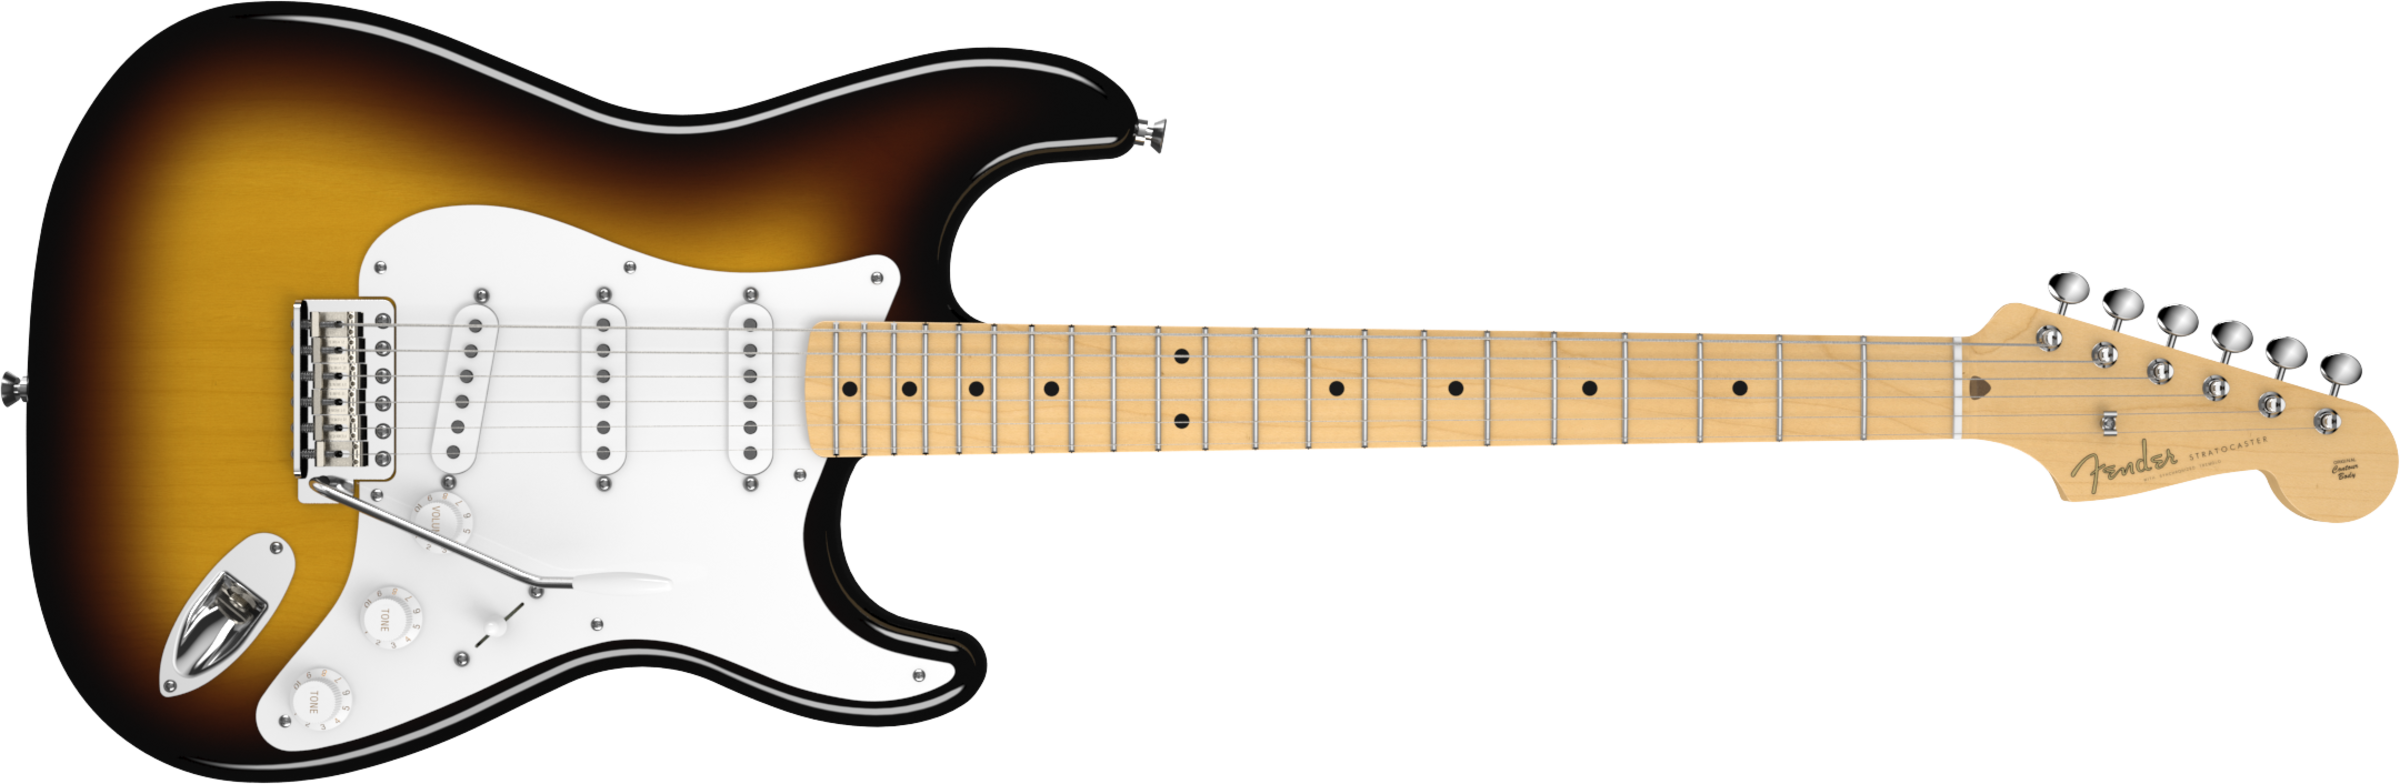 American Vintage 56 Stratocaster Stratocaster Electric Guitars Fender Guitars Fender Guitars Guitar Electric Guitar